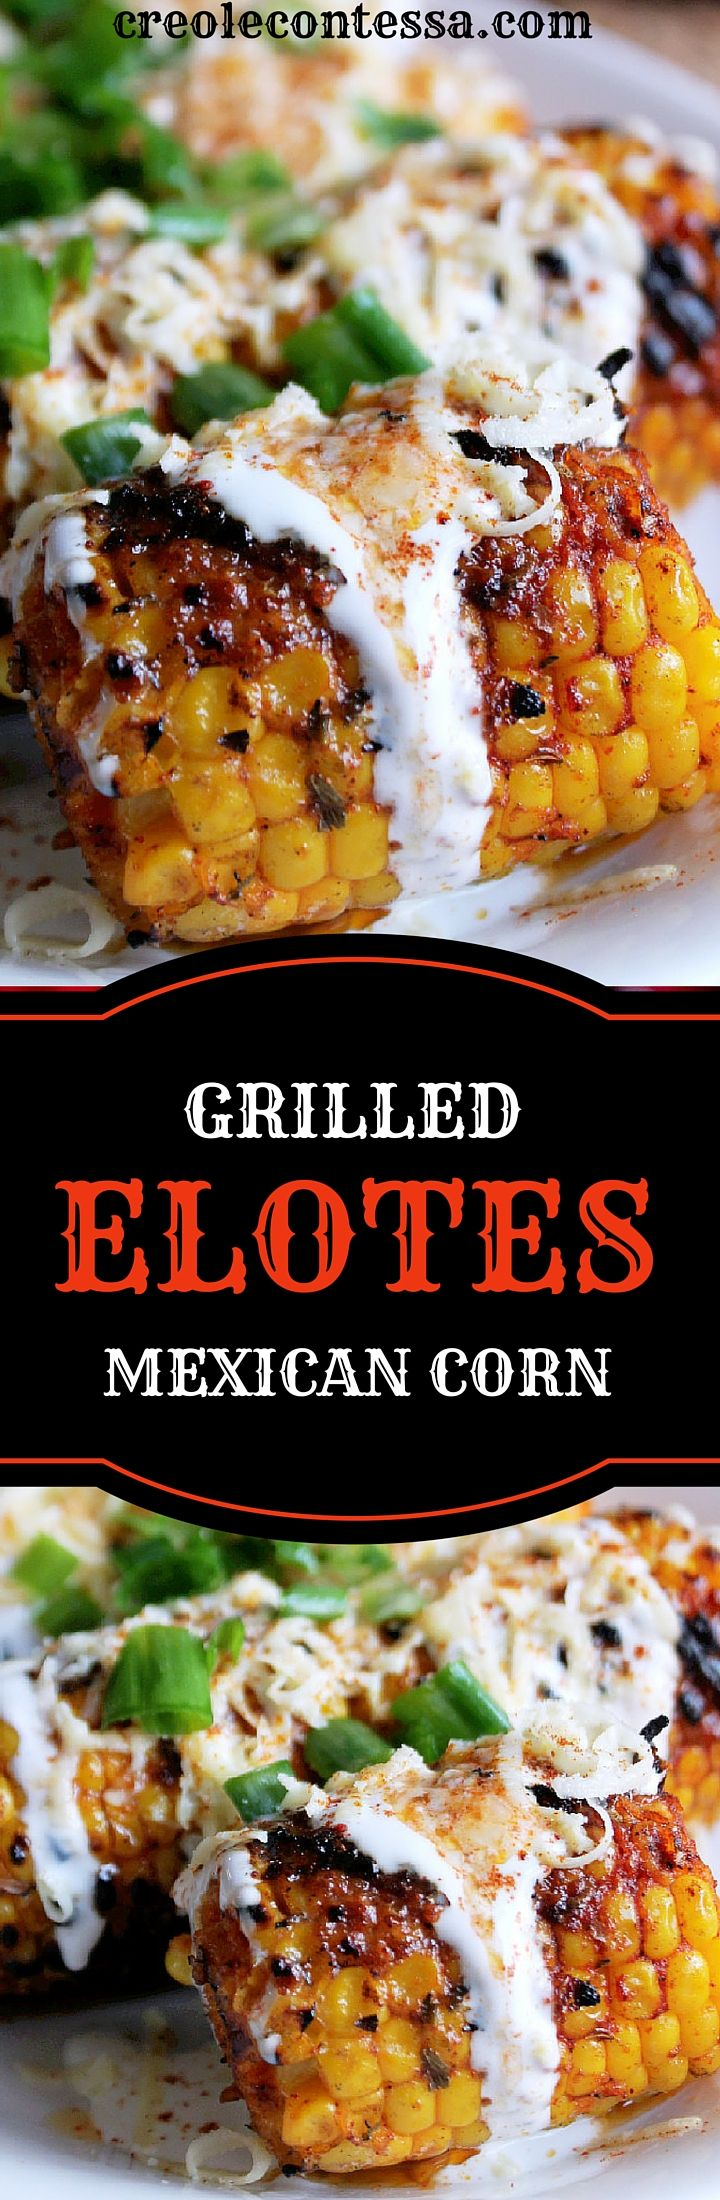 Grilled Elotes -Creole Contessa